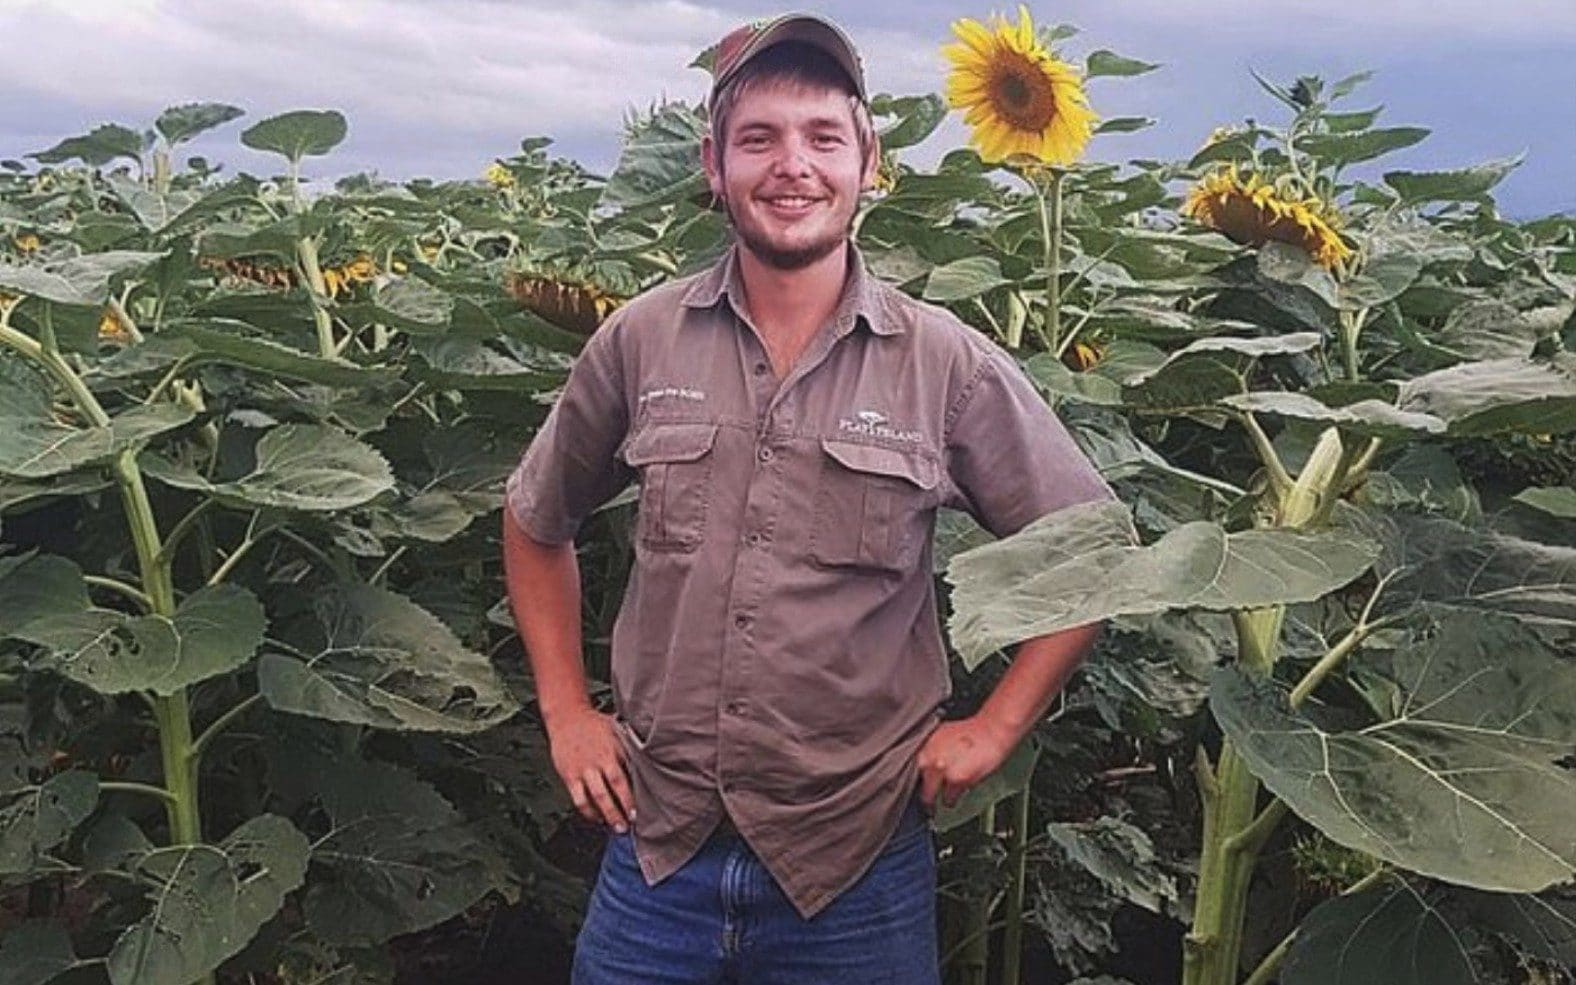 Murder and mayhem: How South African farming became a full-scale war